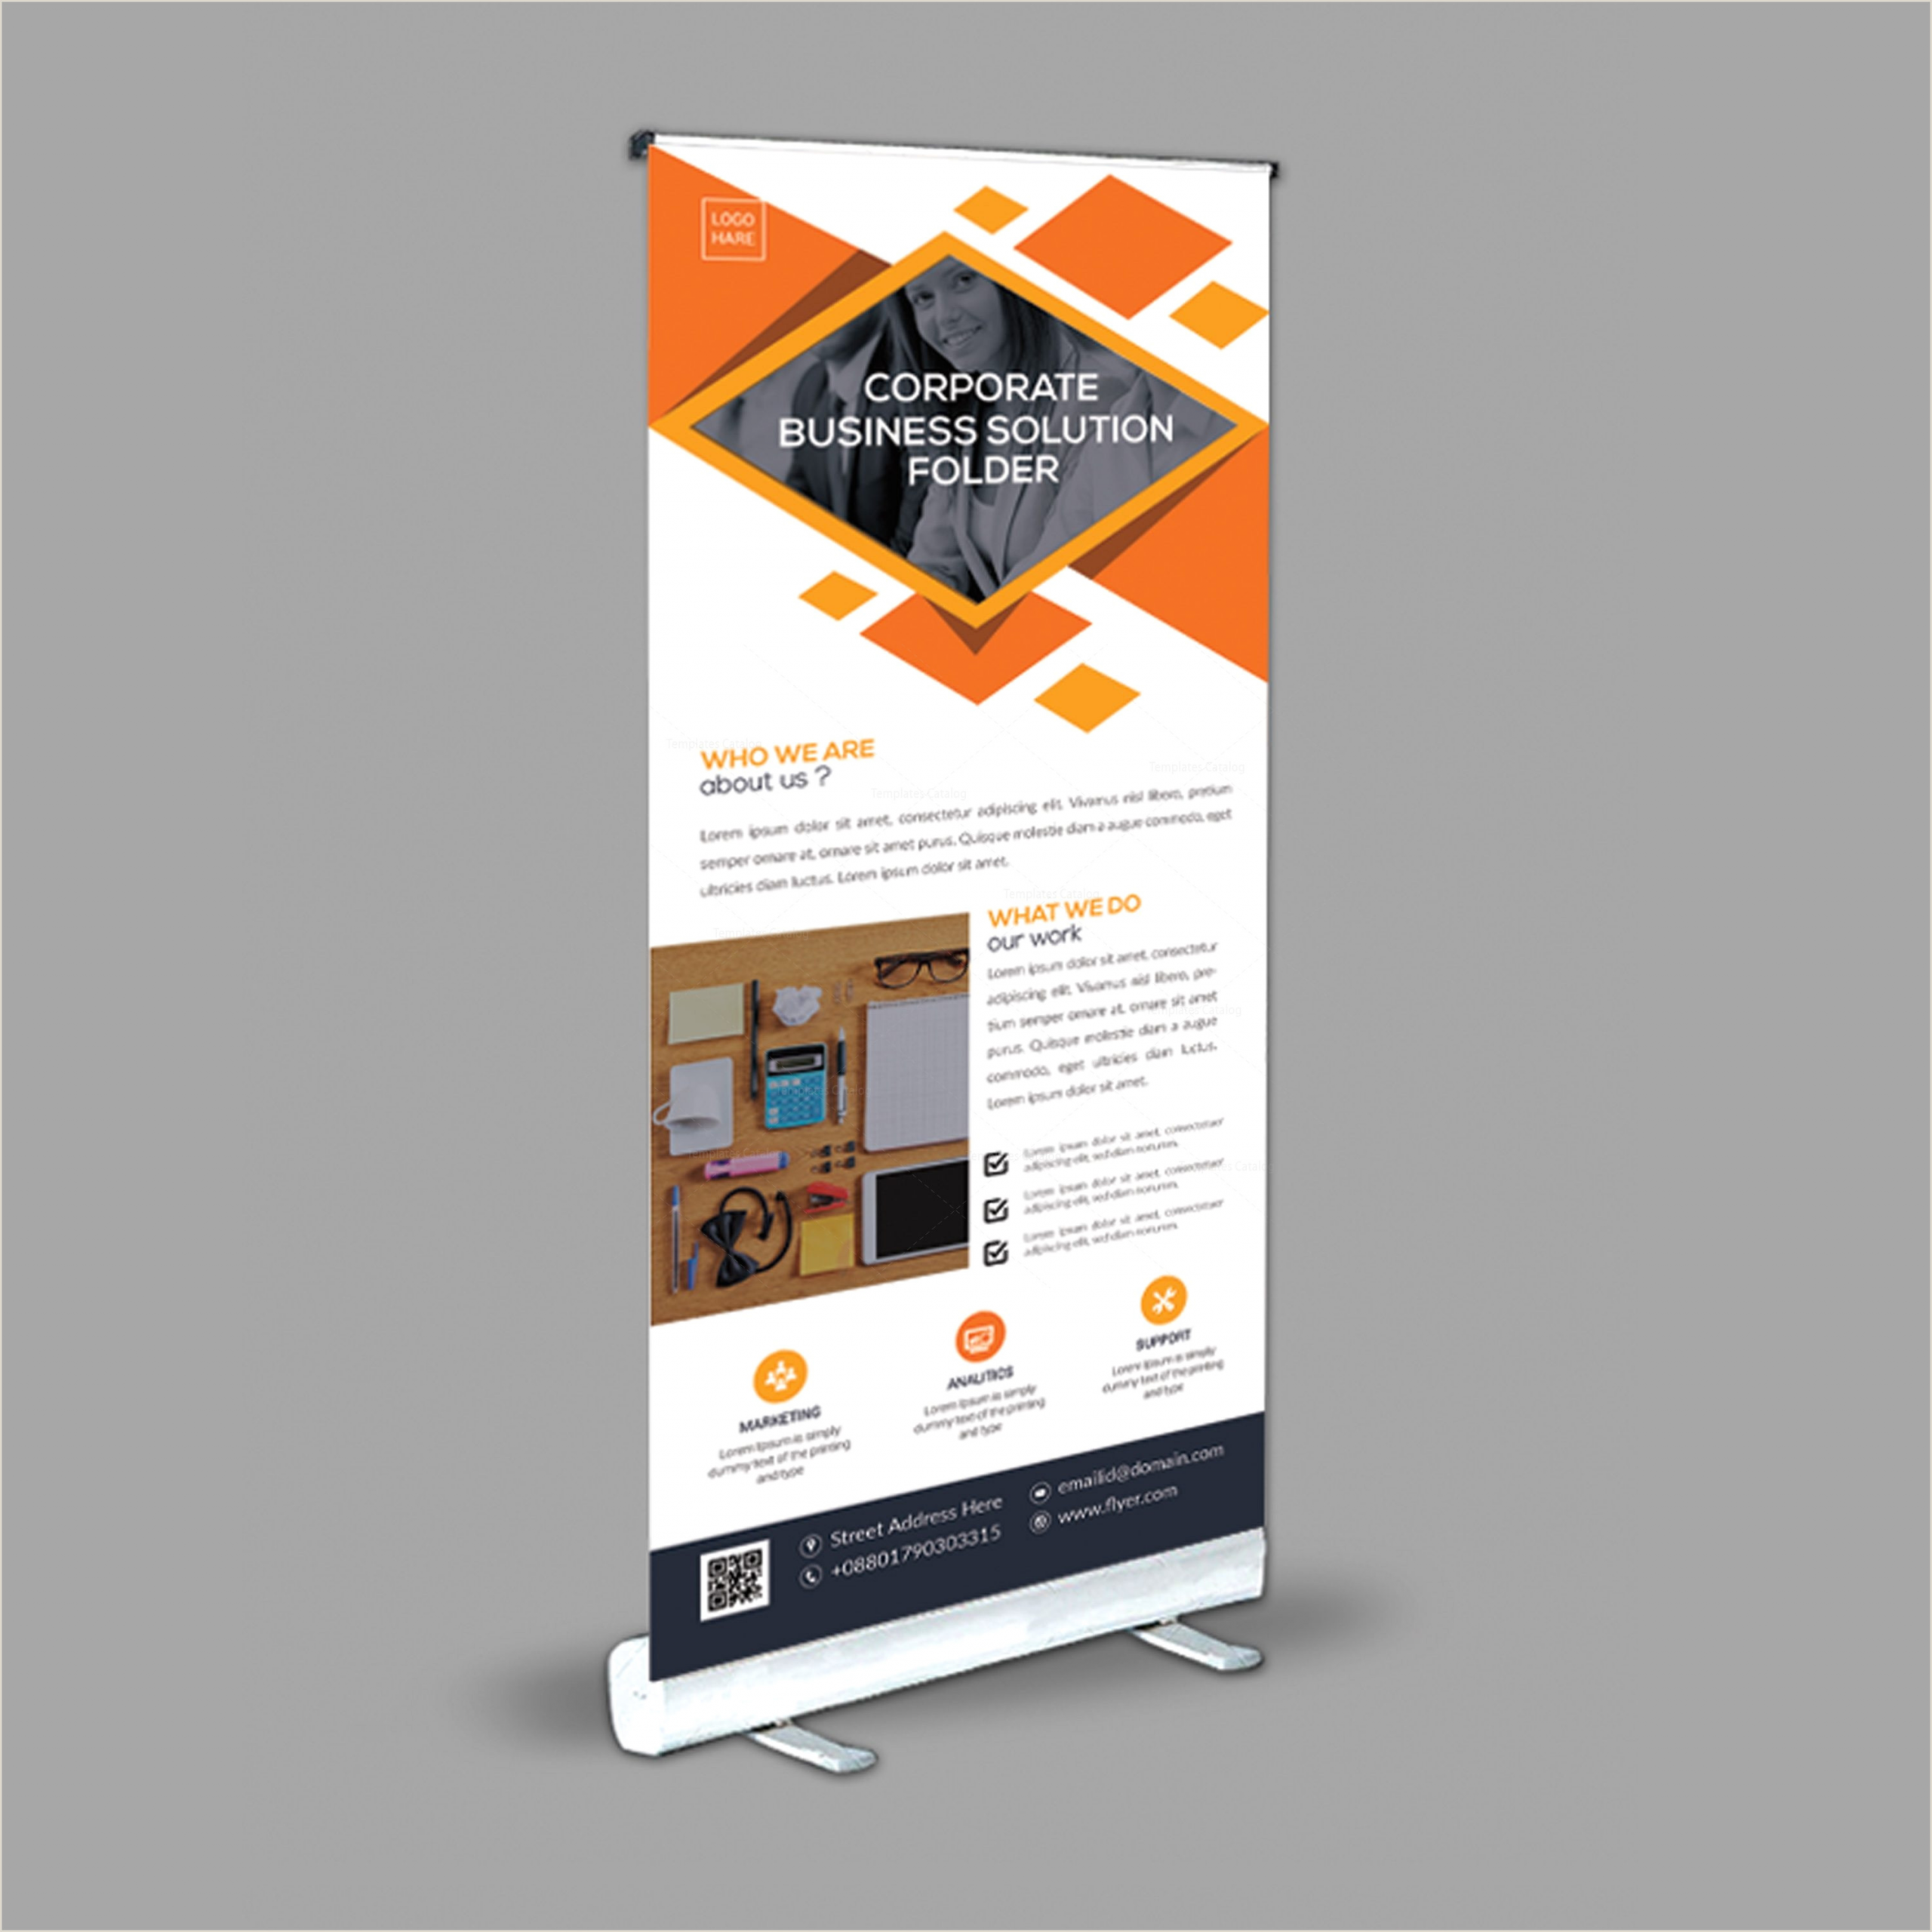 Floor Standing Banners Stylish Roll Up Banner Design Template